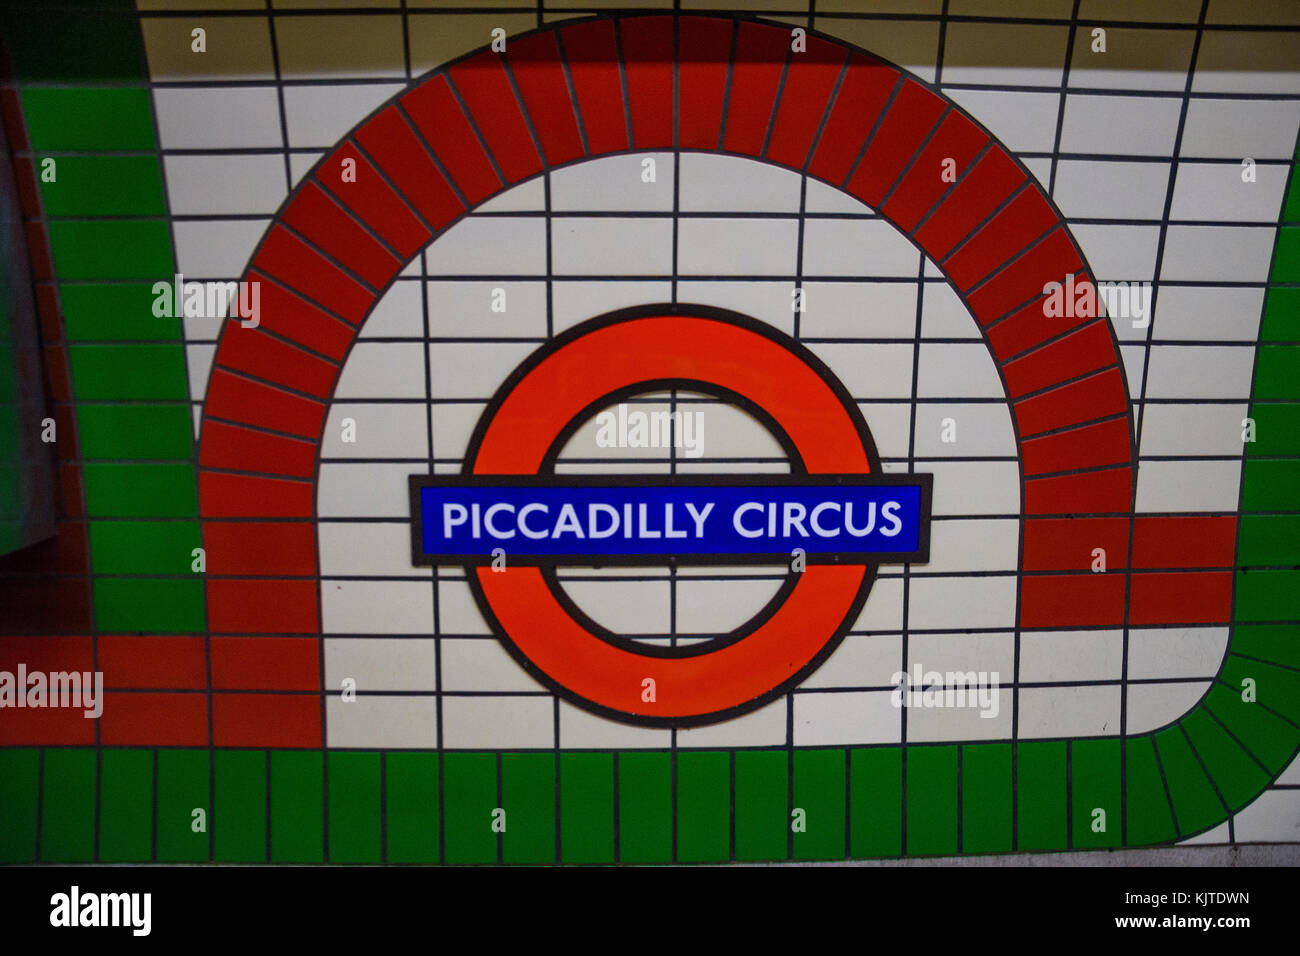 Underground Piccadilly Circus tube station in London on February 2017. The London Underground is the oldest underground - Stock Image